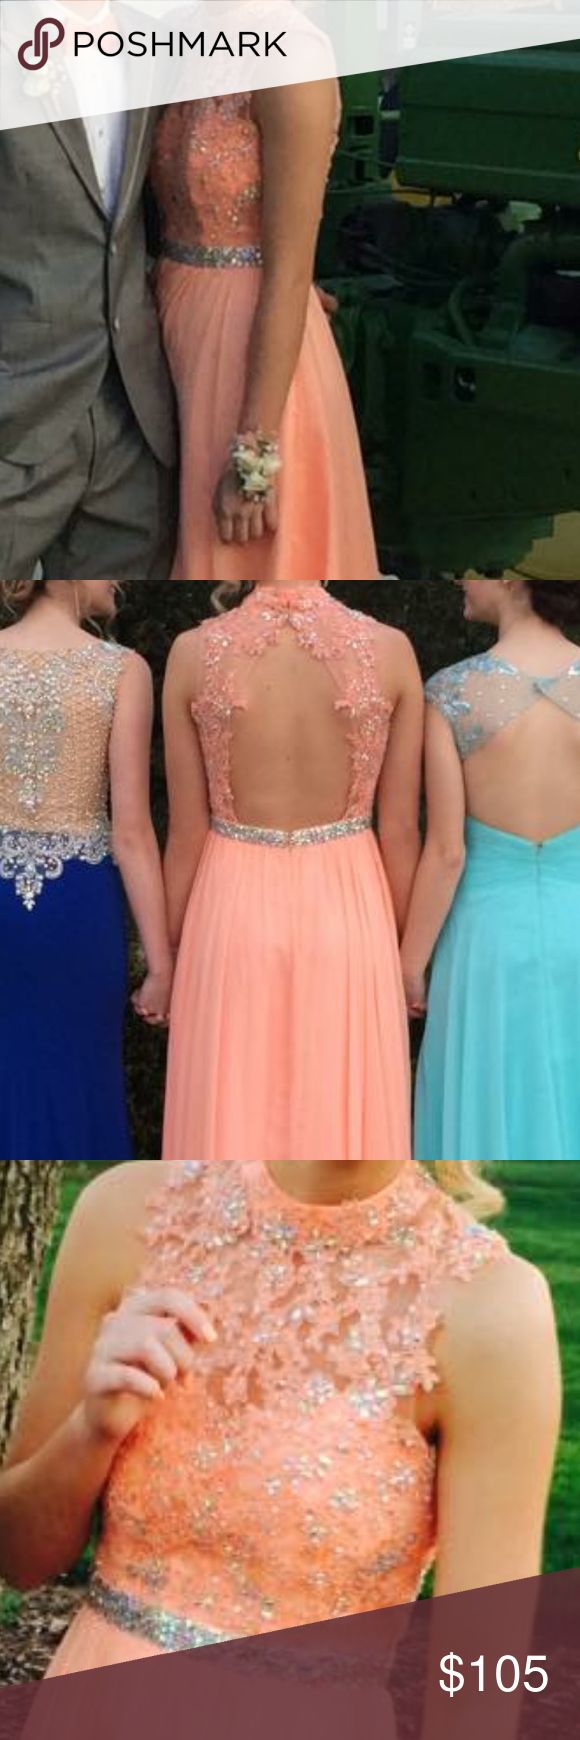 Peach prom dress Peach/coral with iridescent design and lace Dresses Prom